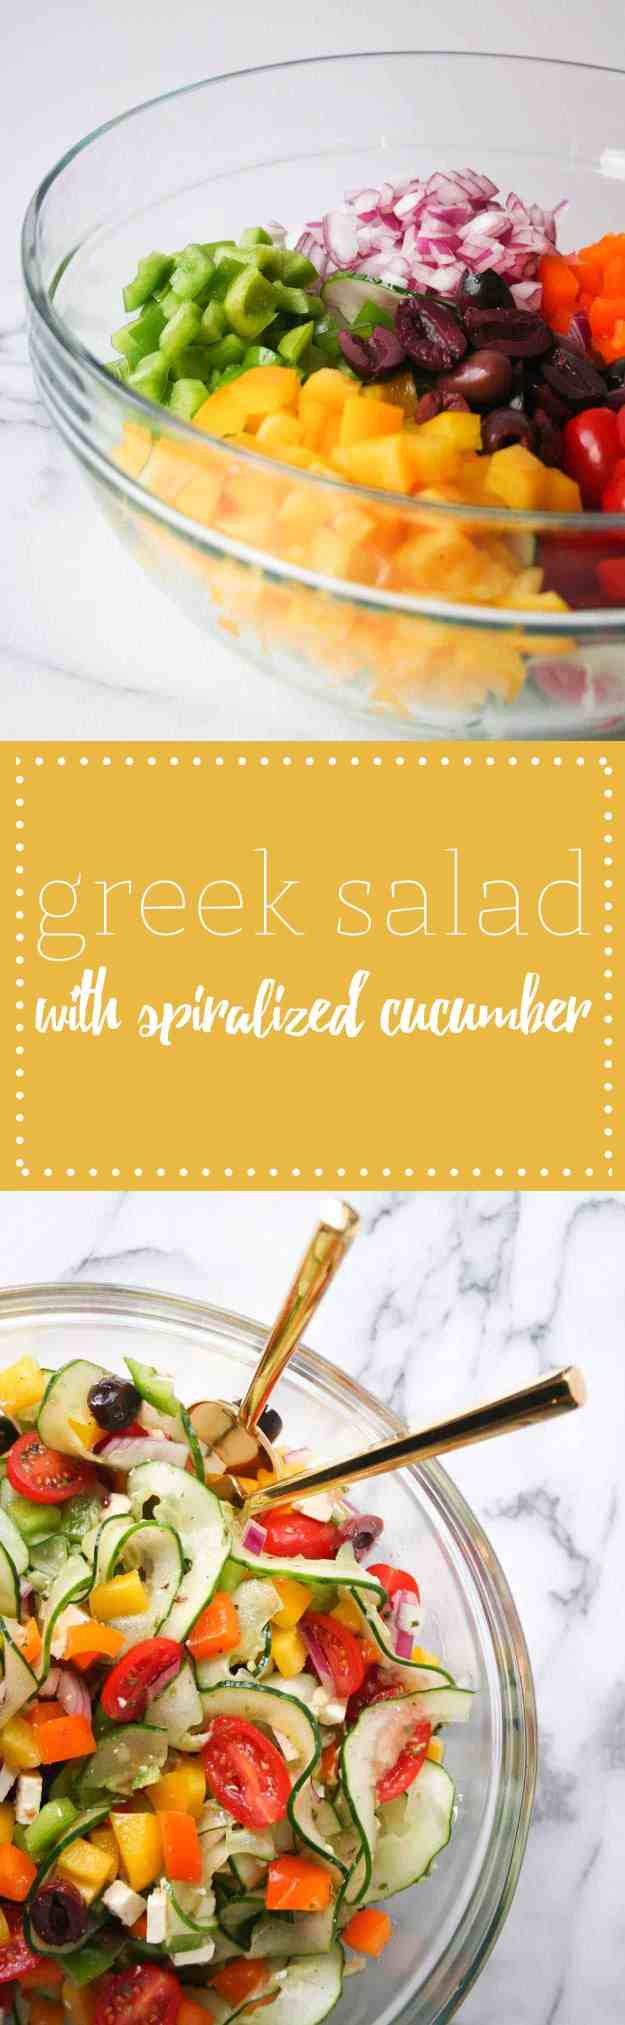 Simple Veggie Packed Greek Salad with Spiralized Cucumber | Hungry by Nature